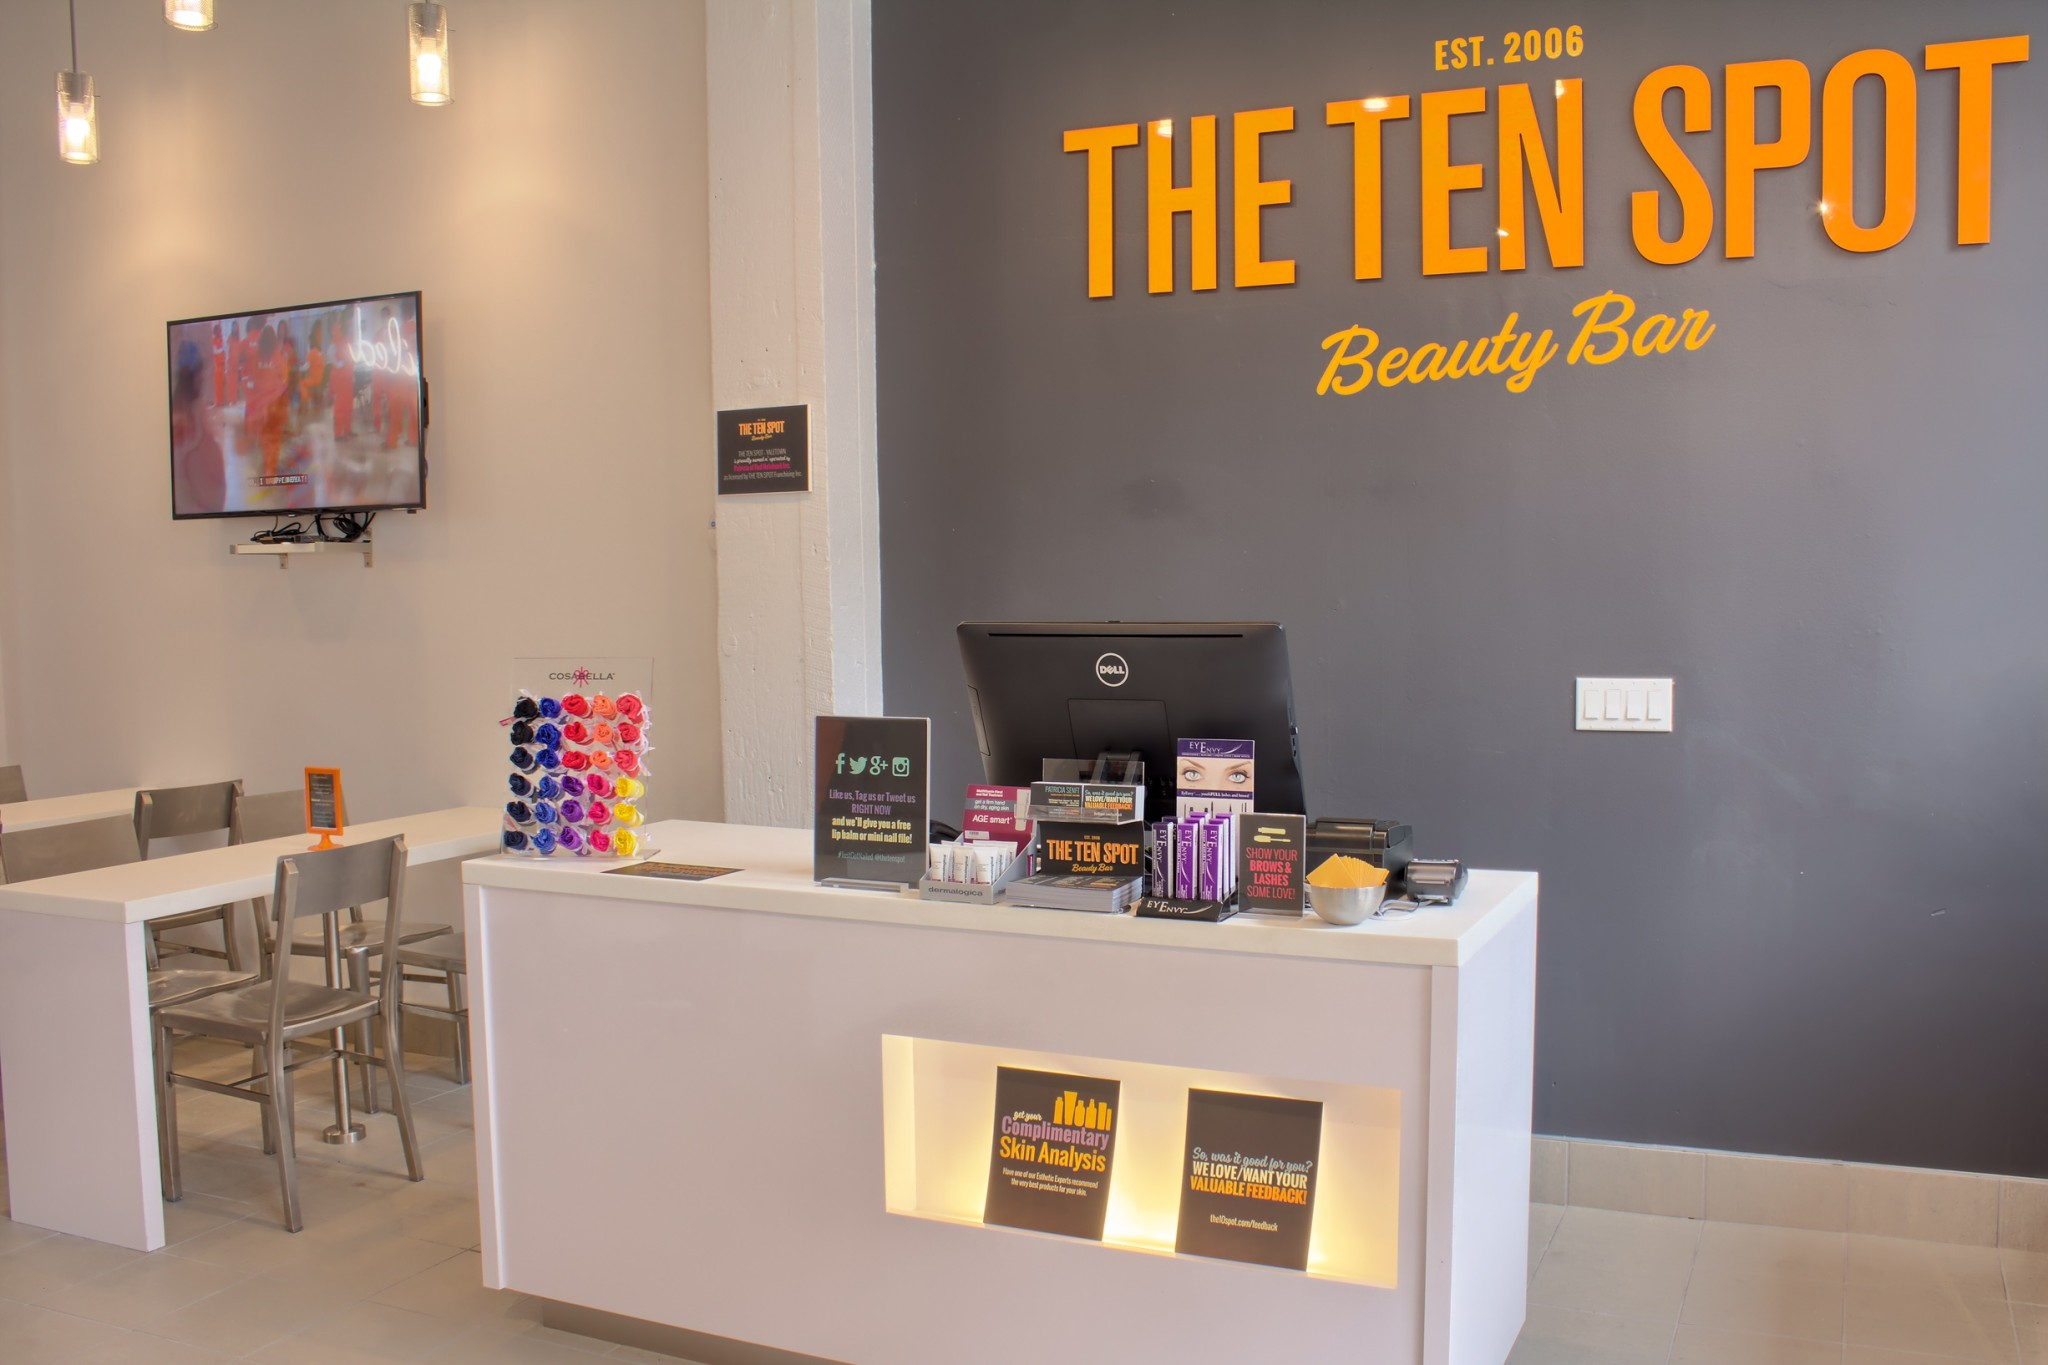 Submitted / The Ten Spot